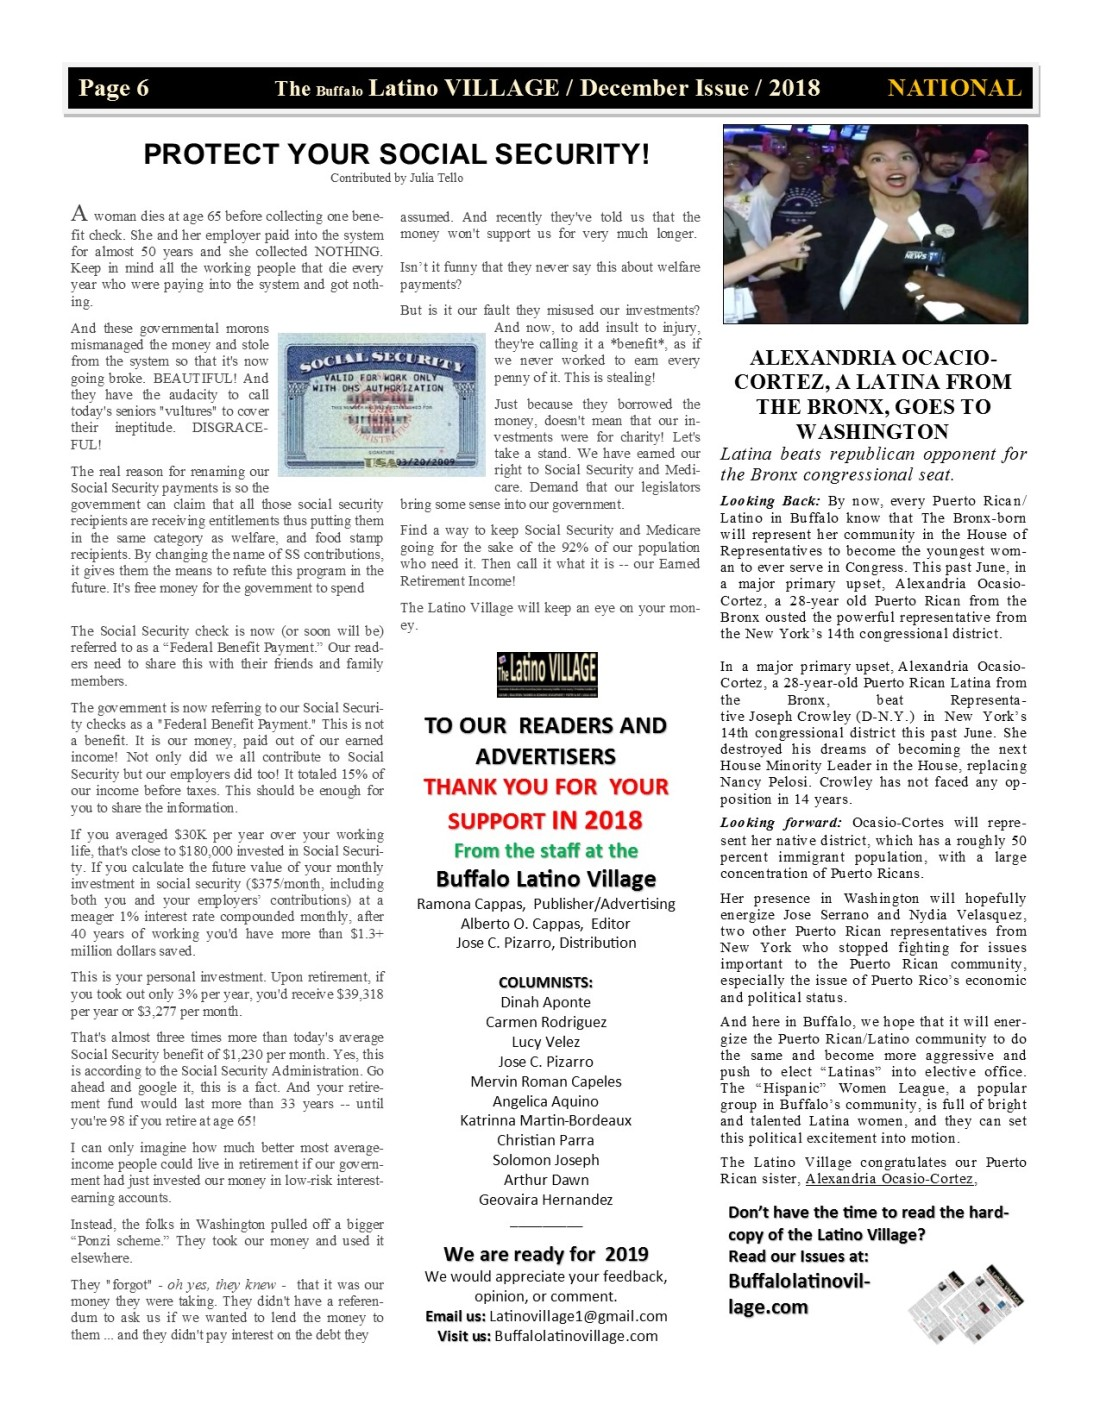 Page 6 Latino Village Newslette December Issue Volume 2 No 14